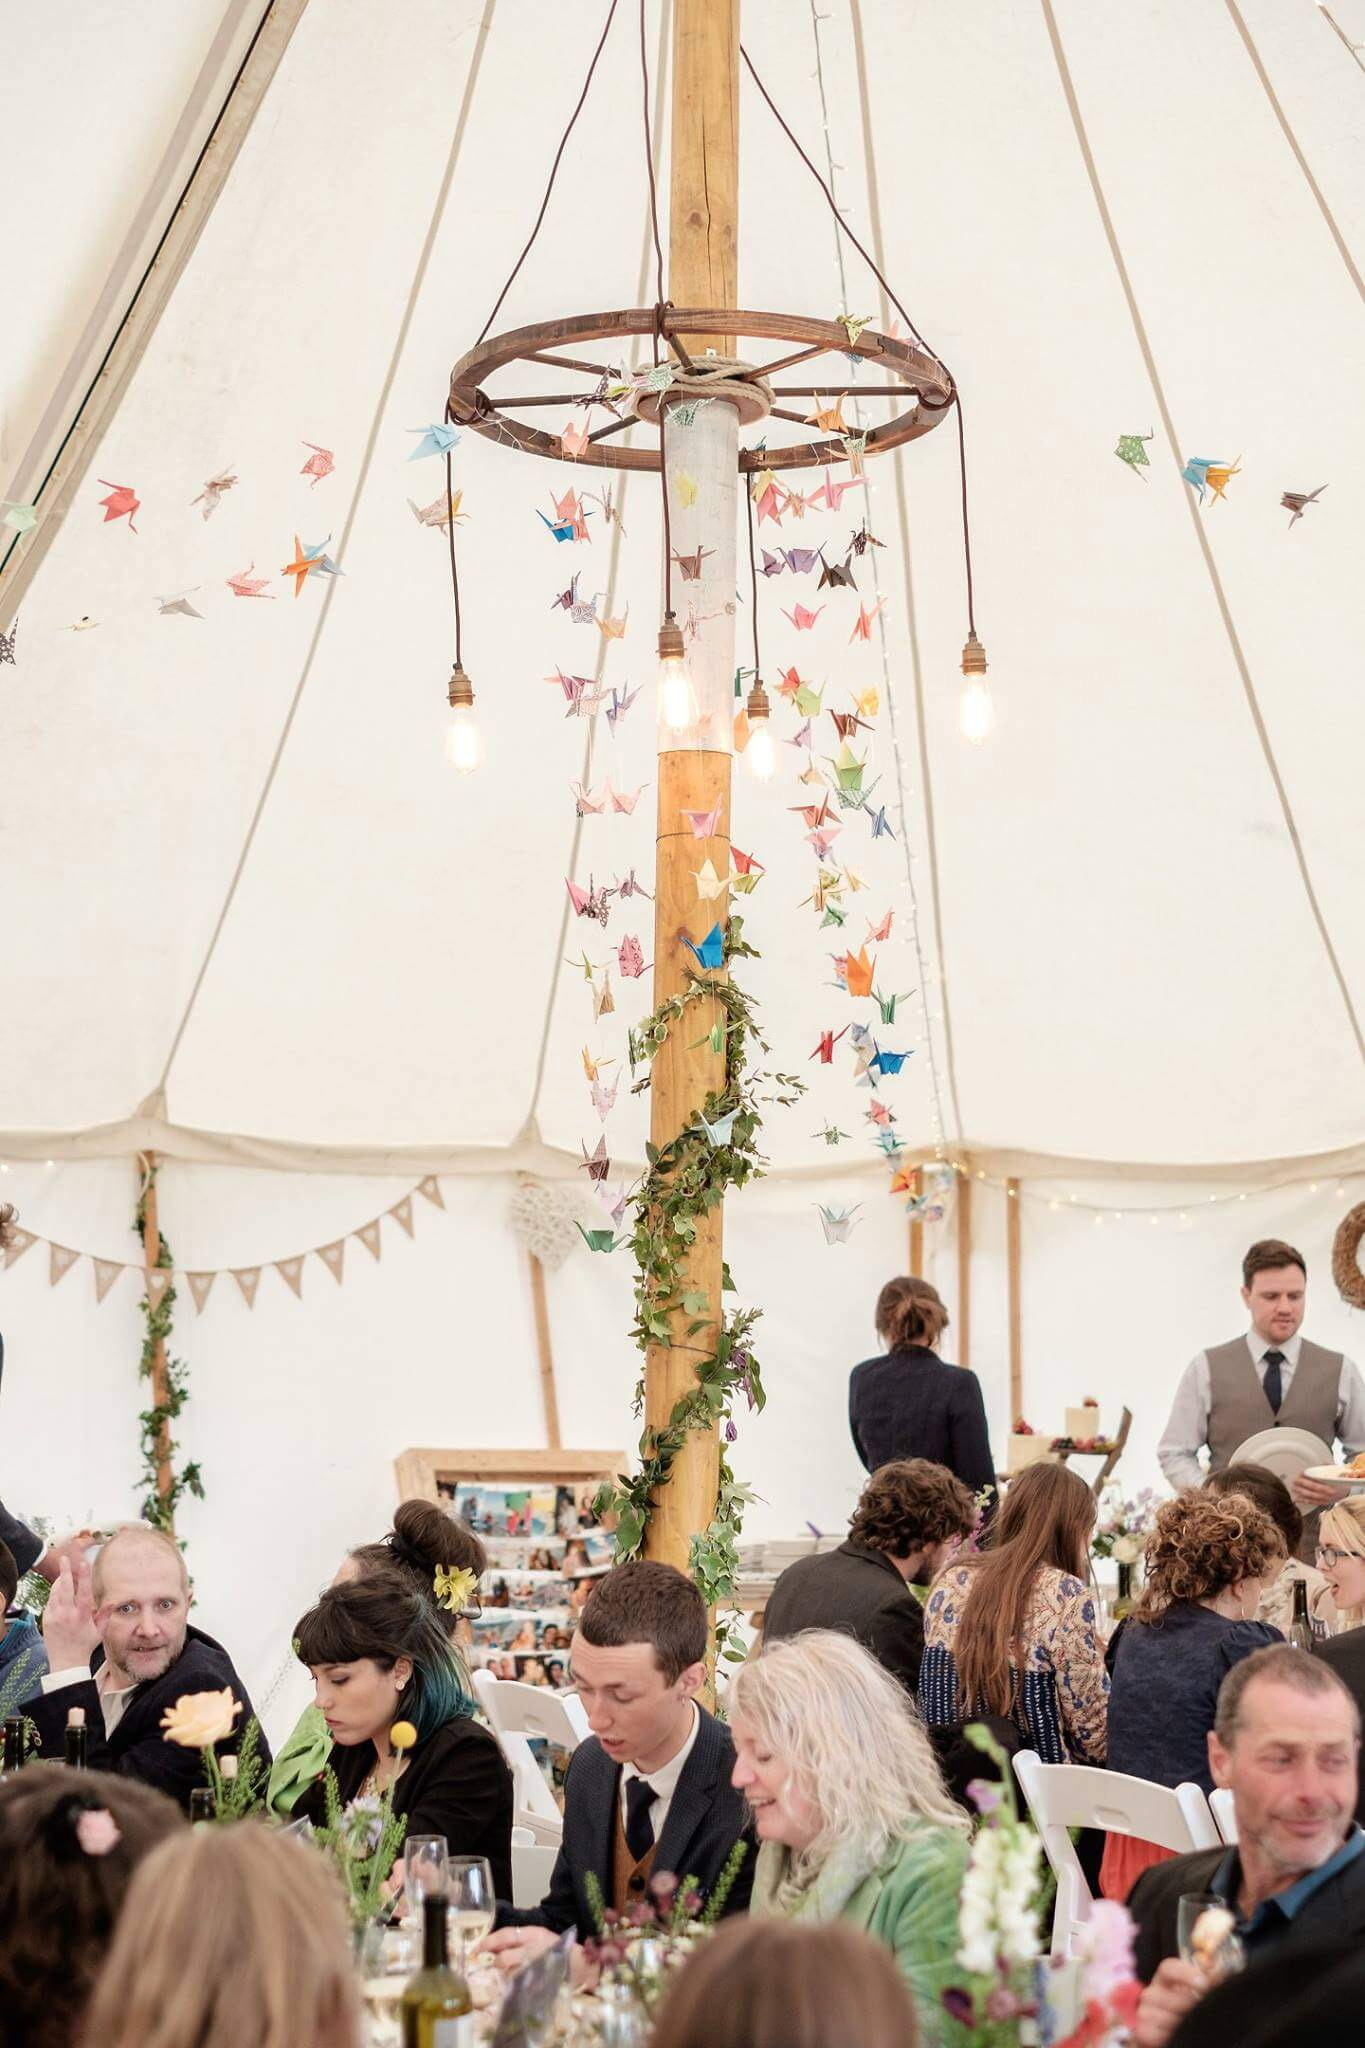 Wagon wheel chandelier and vintage dangly lighting in marquee